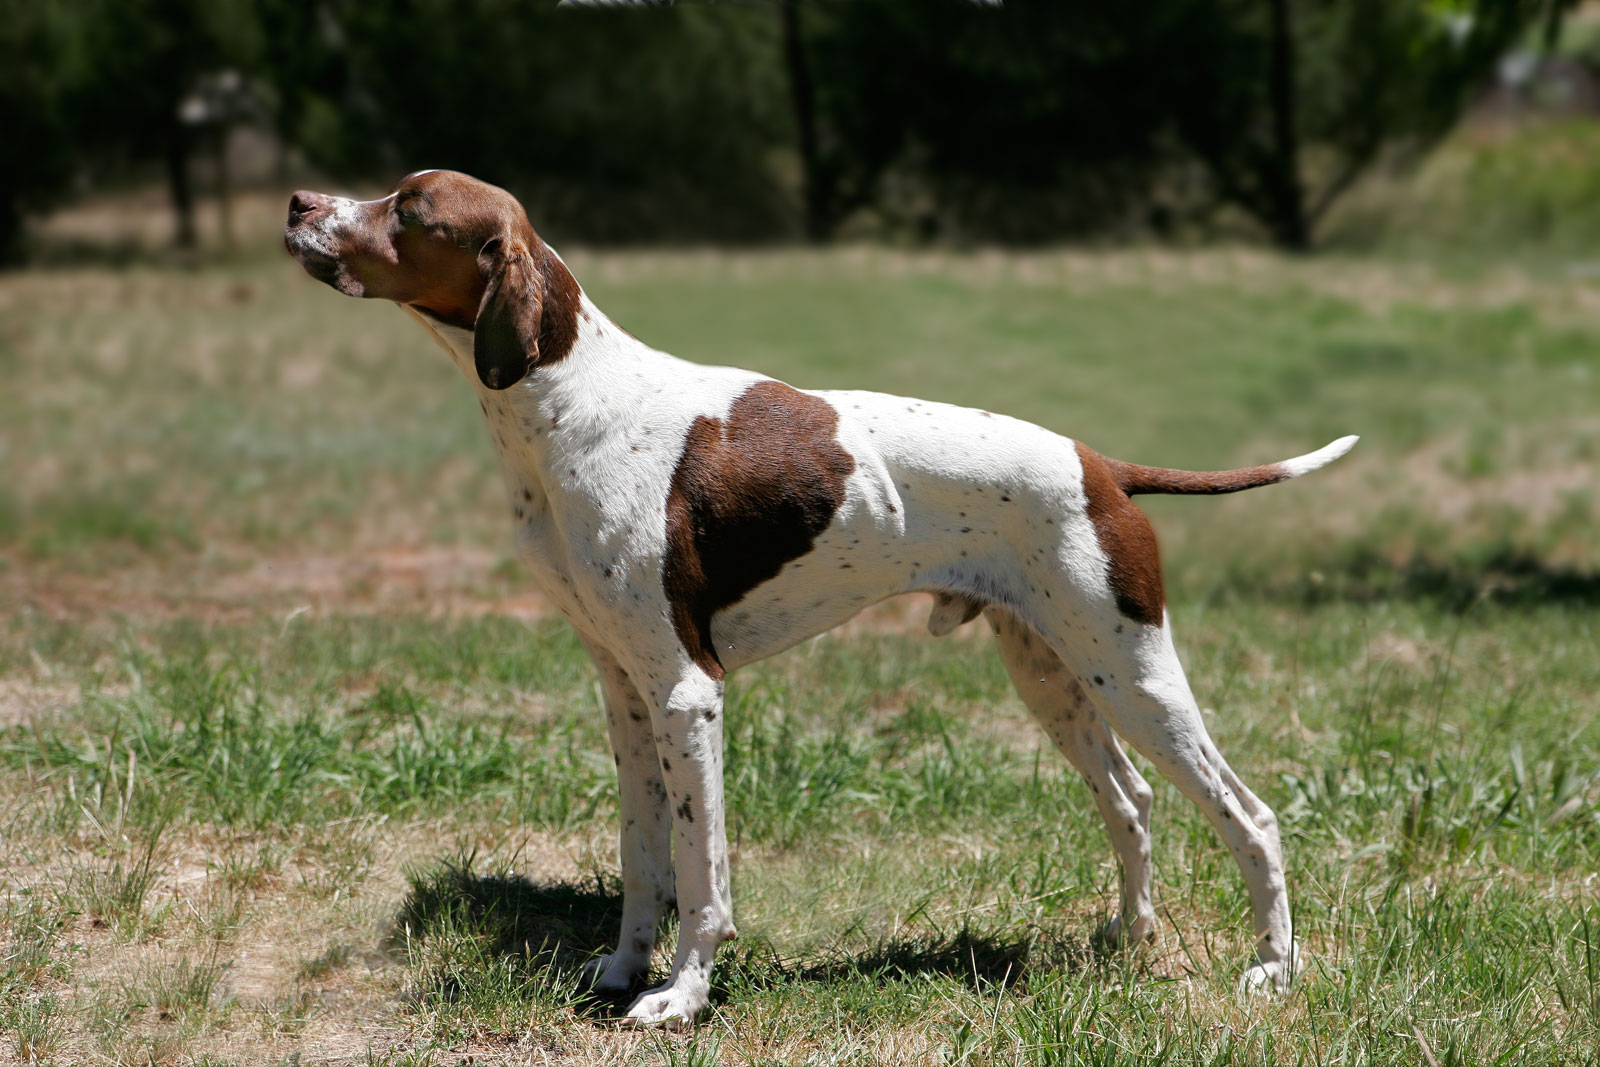 http://upload.wikimedia.org/wikipedia/commons/c/c5/English_pointer.jpg